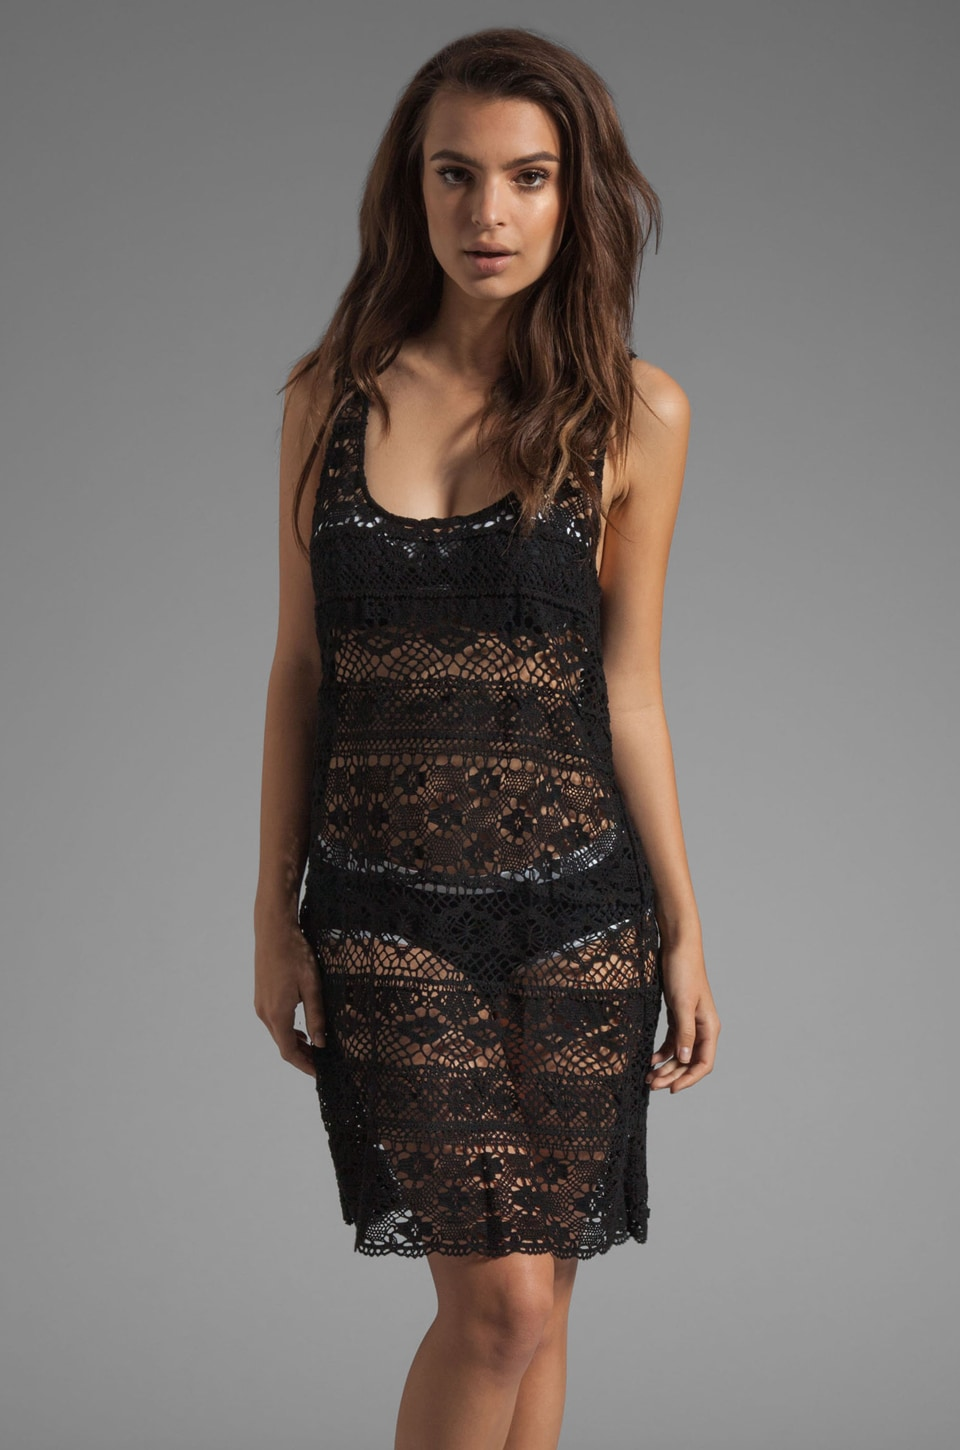 Nanette Lepore Cosmic Crochet Tank Dress Cover Up in Black